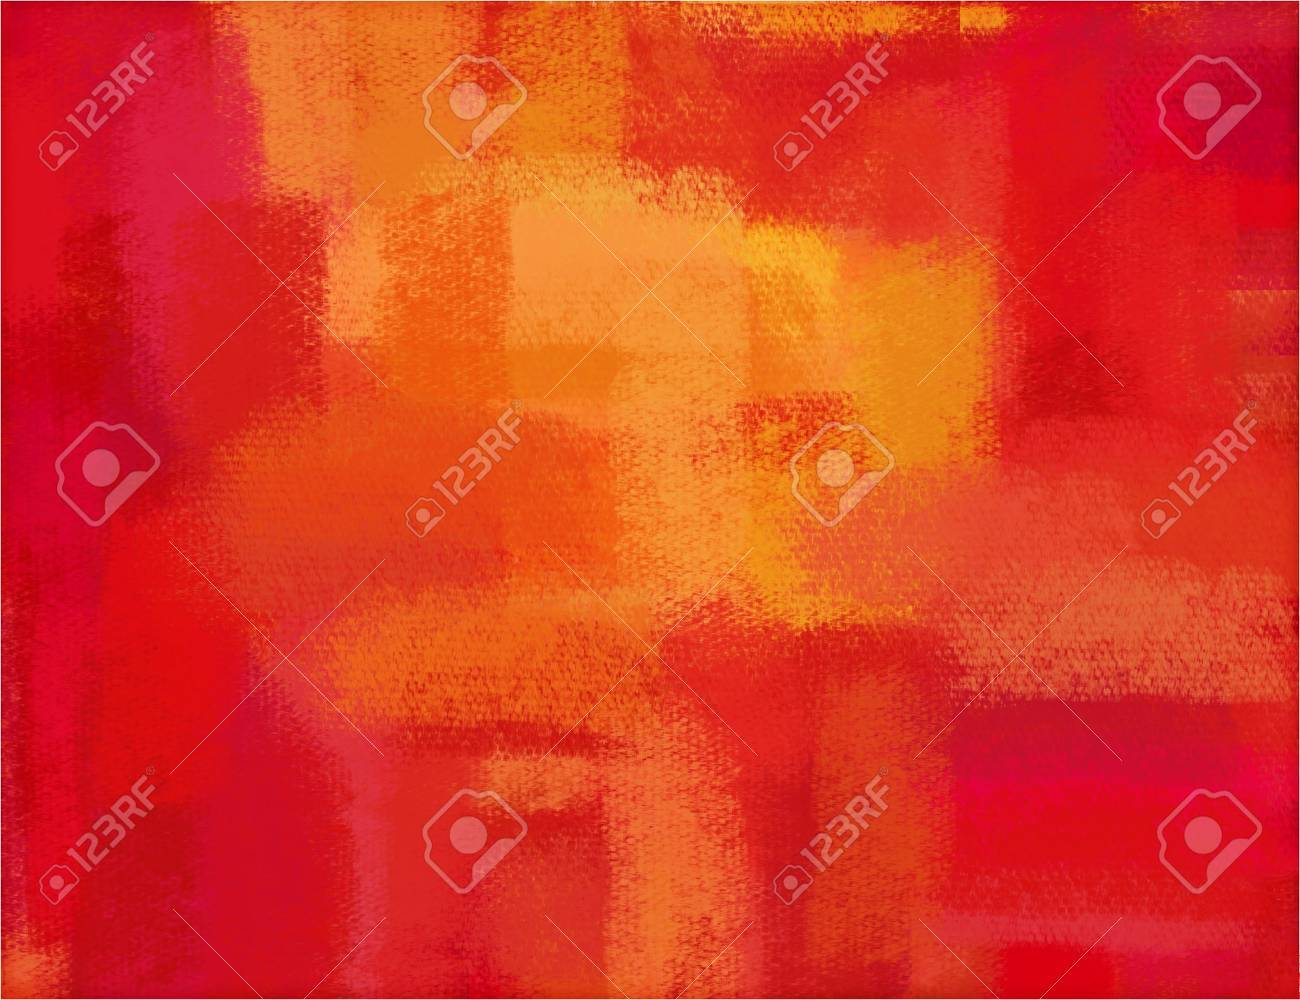 Abstract hand painted art for background Stock Photo - 17393991